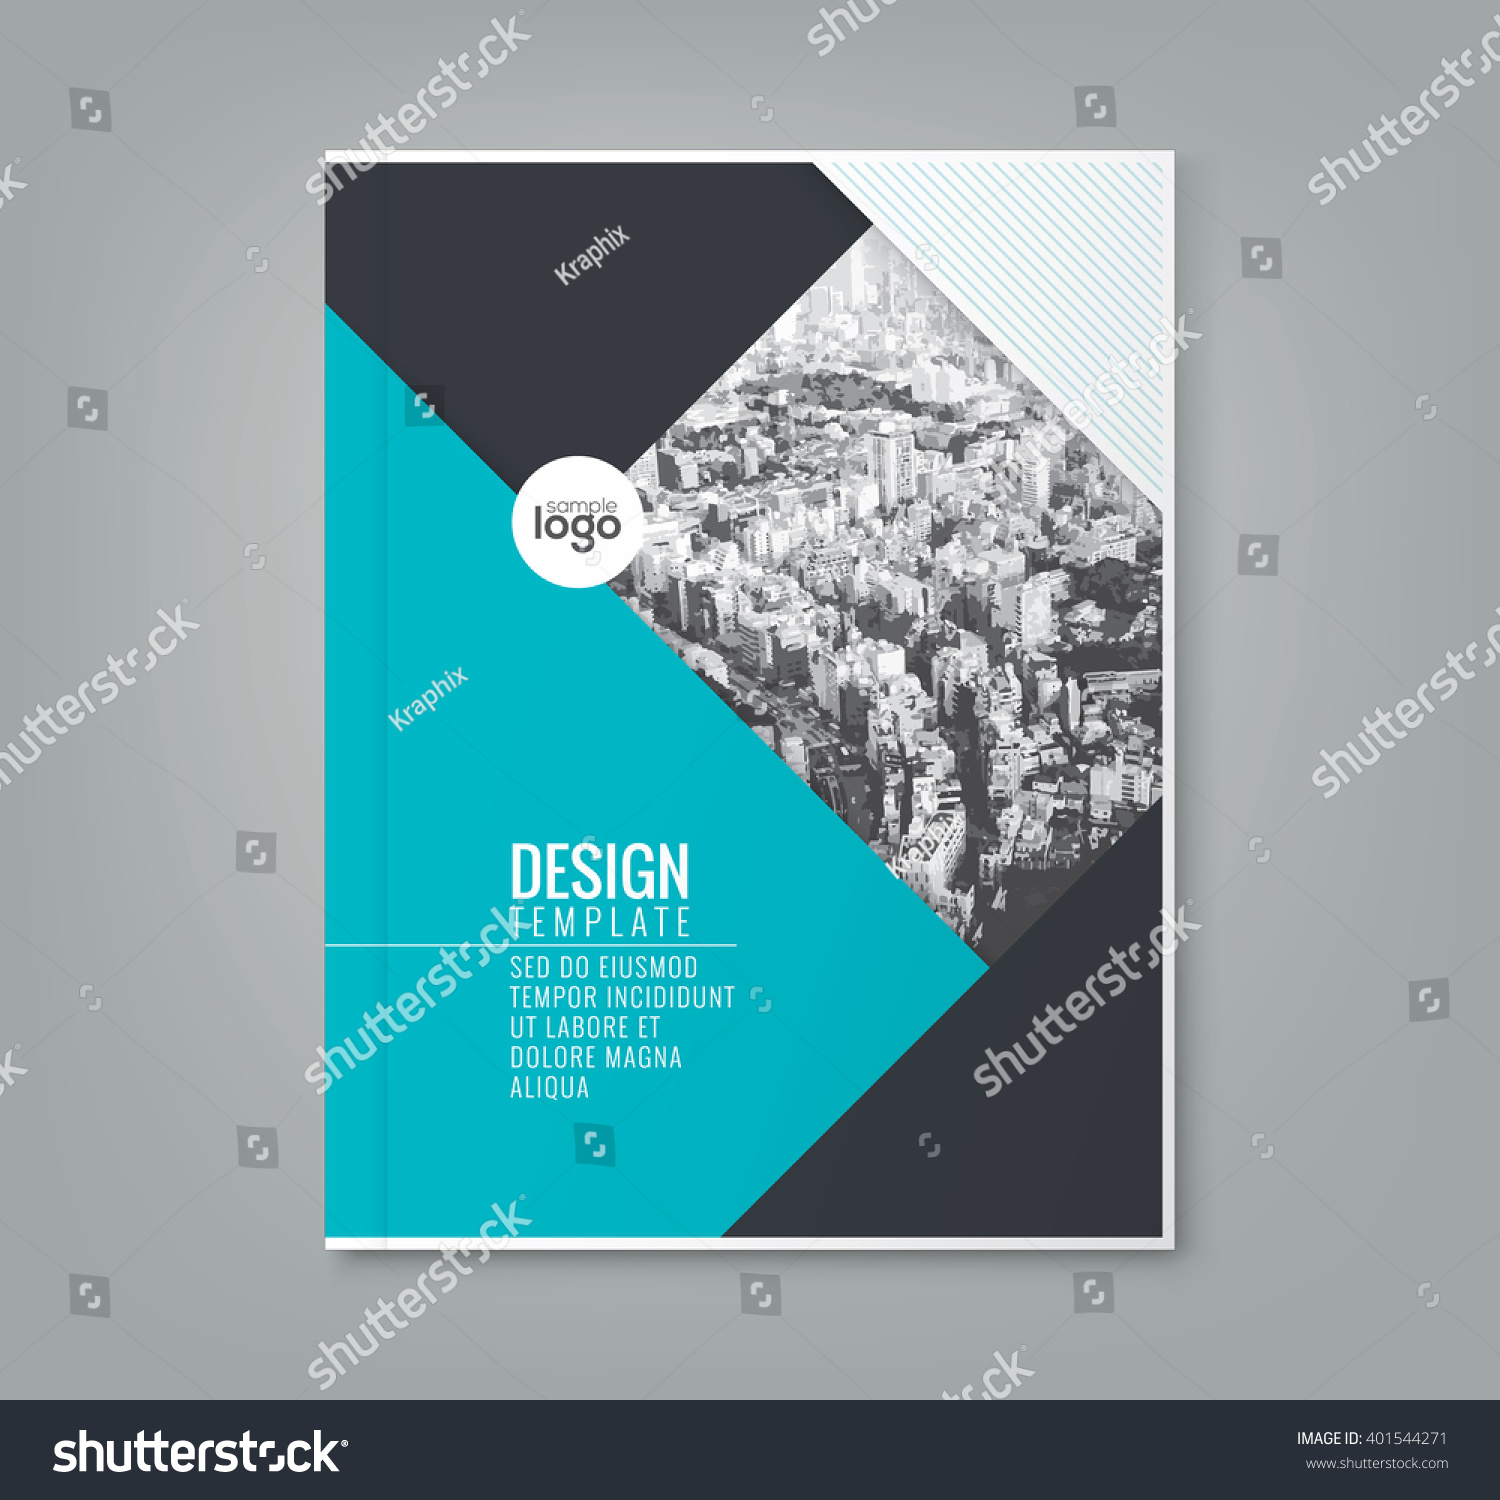 Simple Book Cover Design Templates : Minimal simple blue color design template stock vector